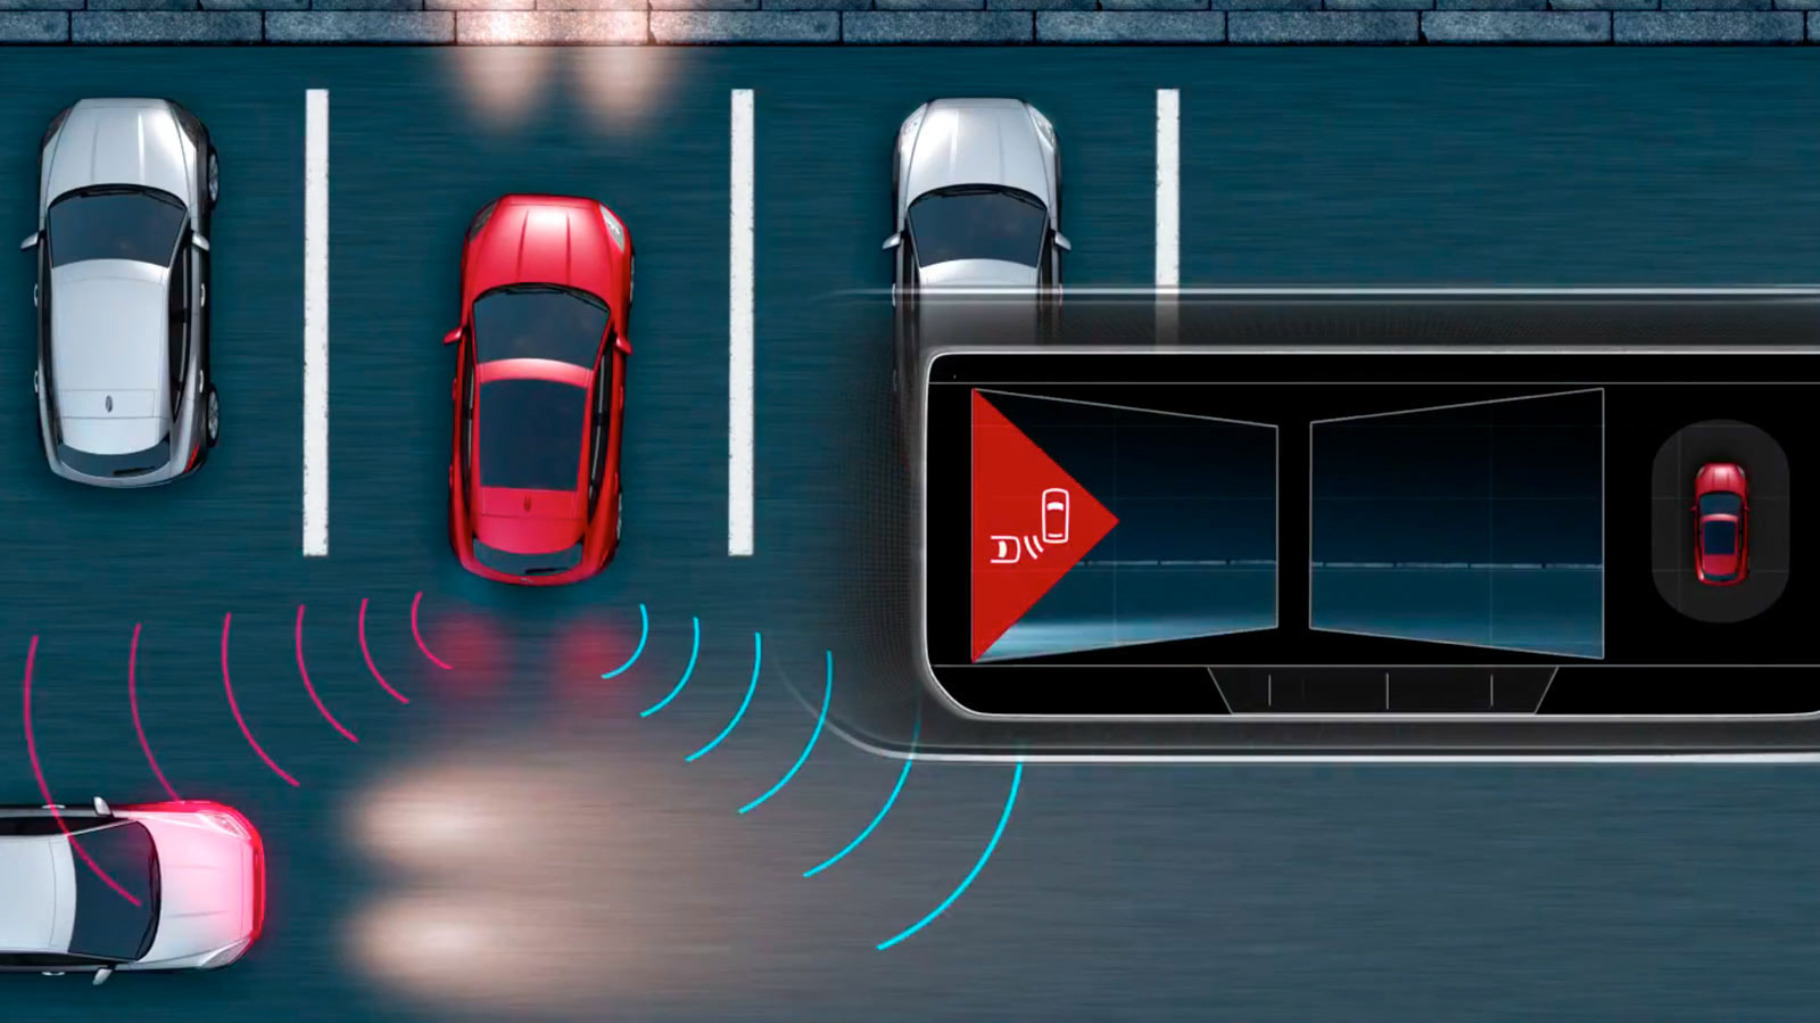 A diagram of Jaguar E-Pace Rear Traffic Monitor detecting hazards when reversing out of a parking bay.